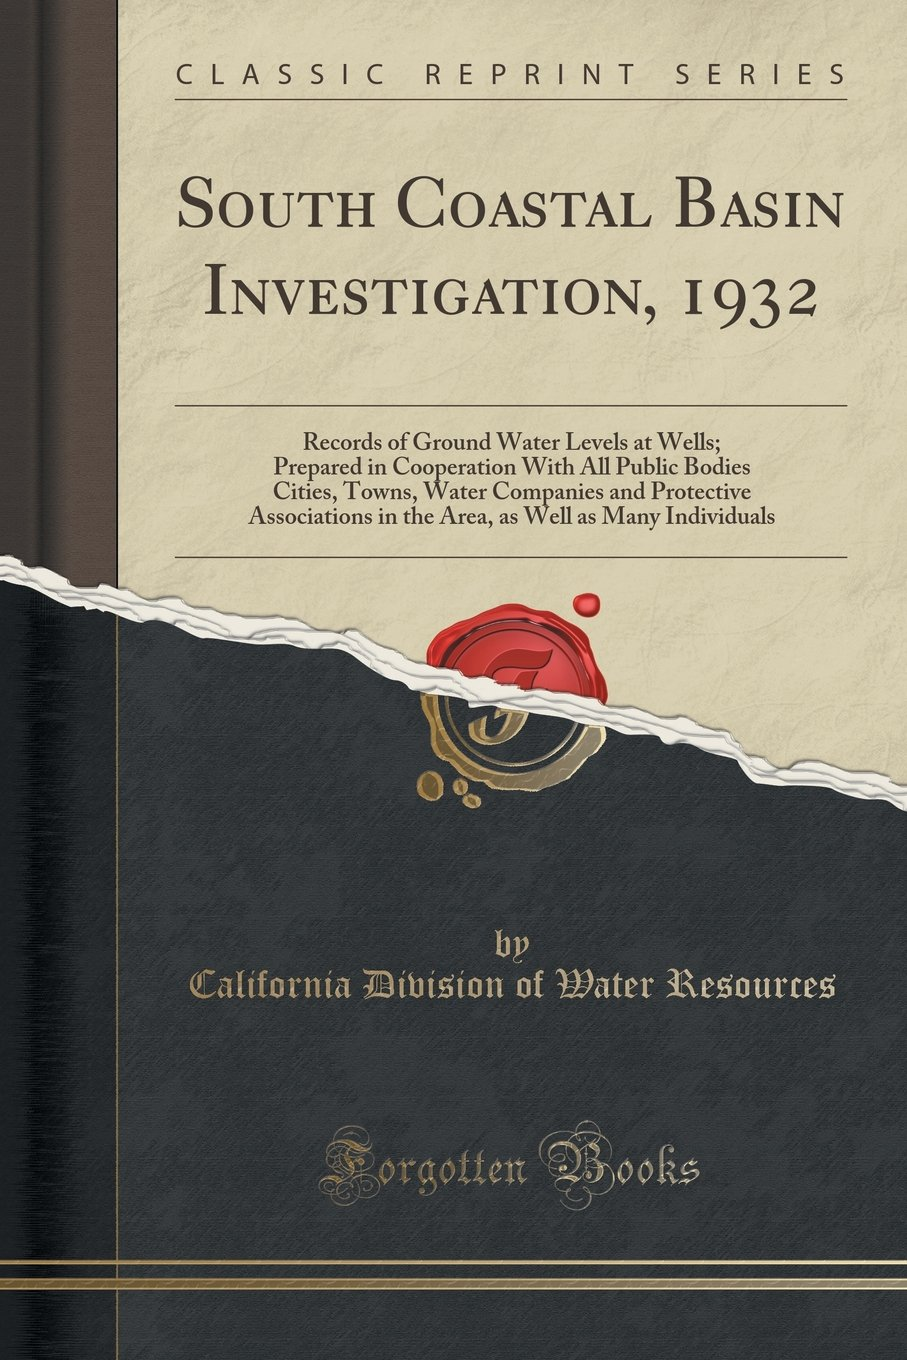 South Coastal Basin Investigation, 1932: Records of Ground Water Levels at Wells; Prepared in Cooperation With All Public Bodies Cities, Towns, Water ... as Well as Many Individuals (Classic Reprint) pdf epub